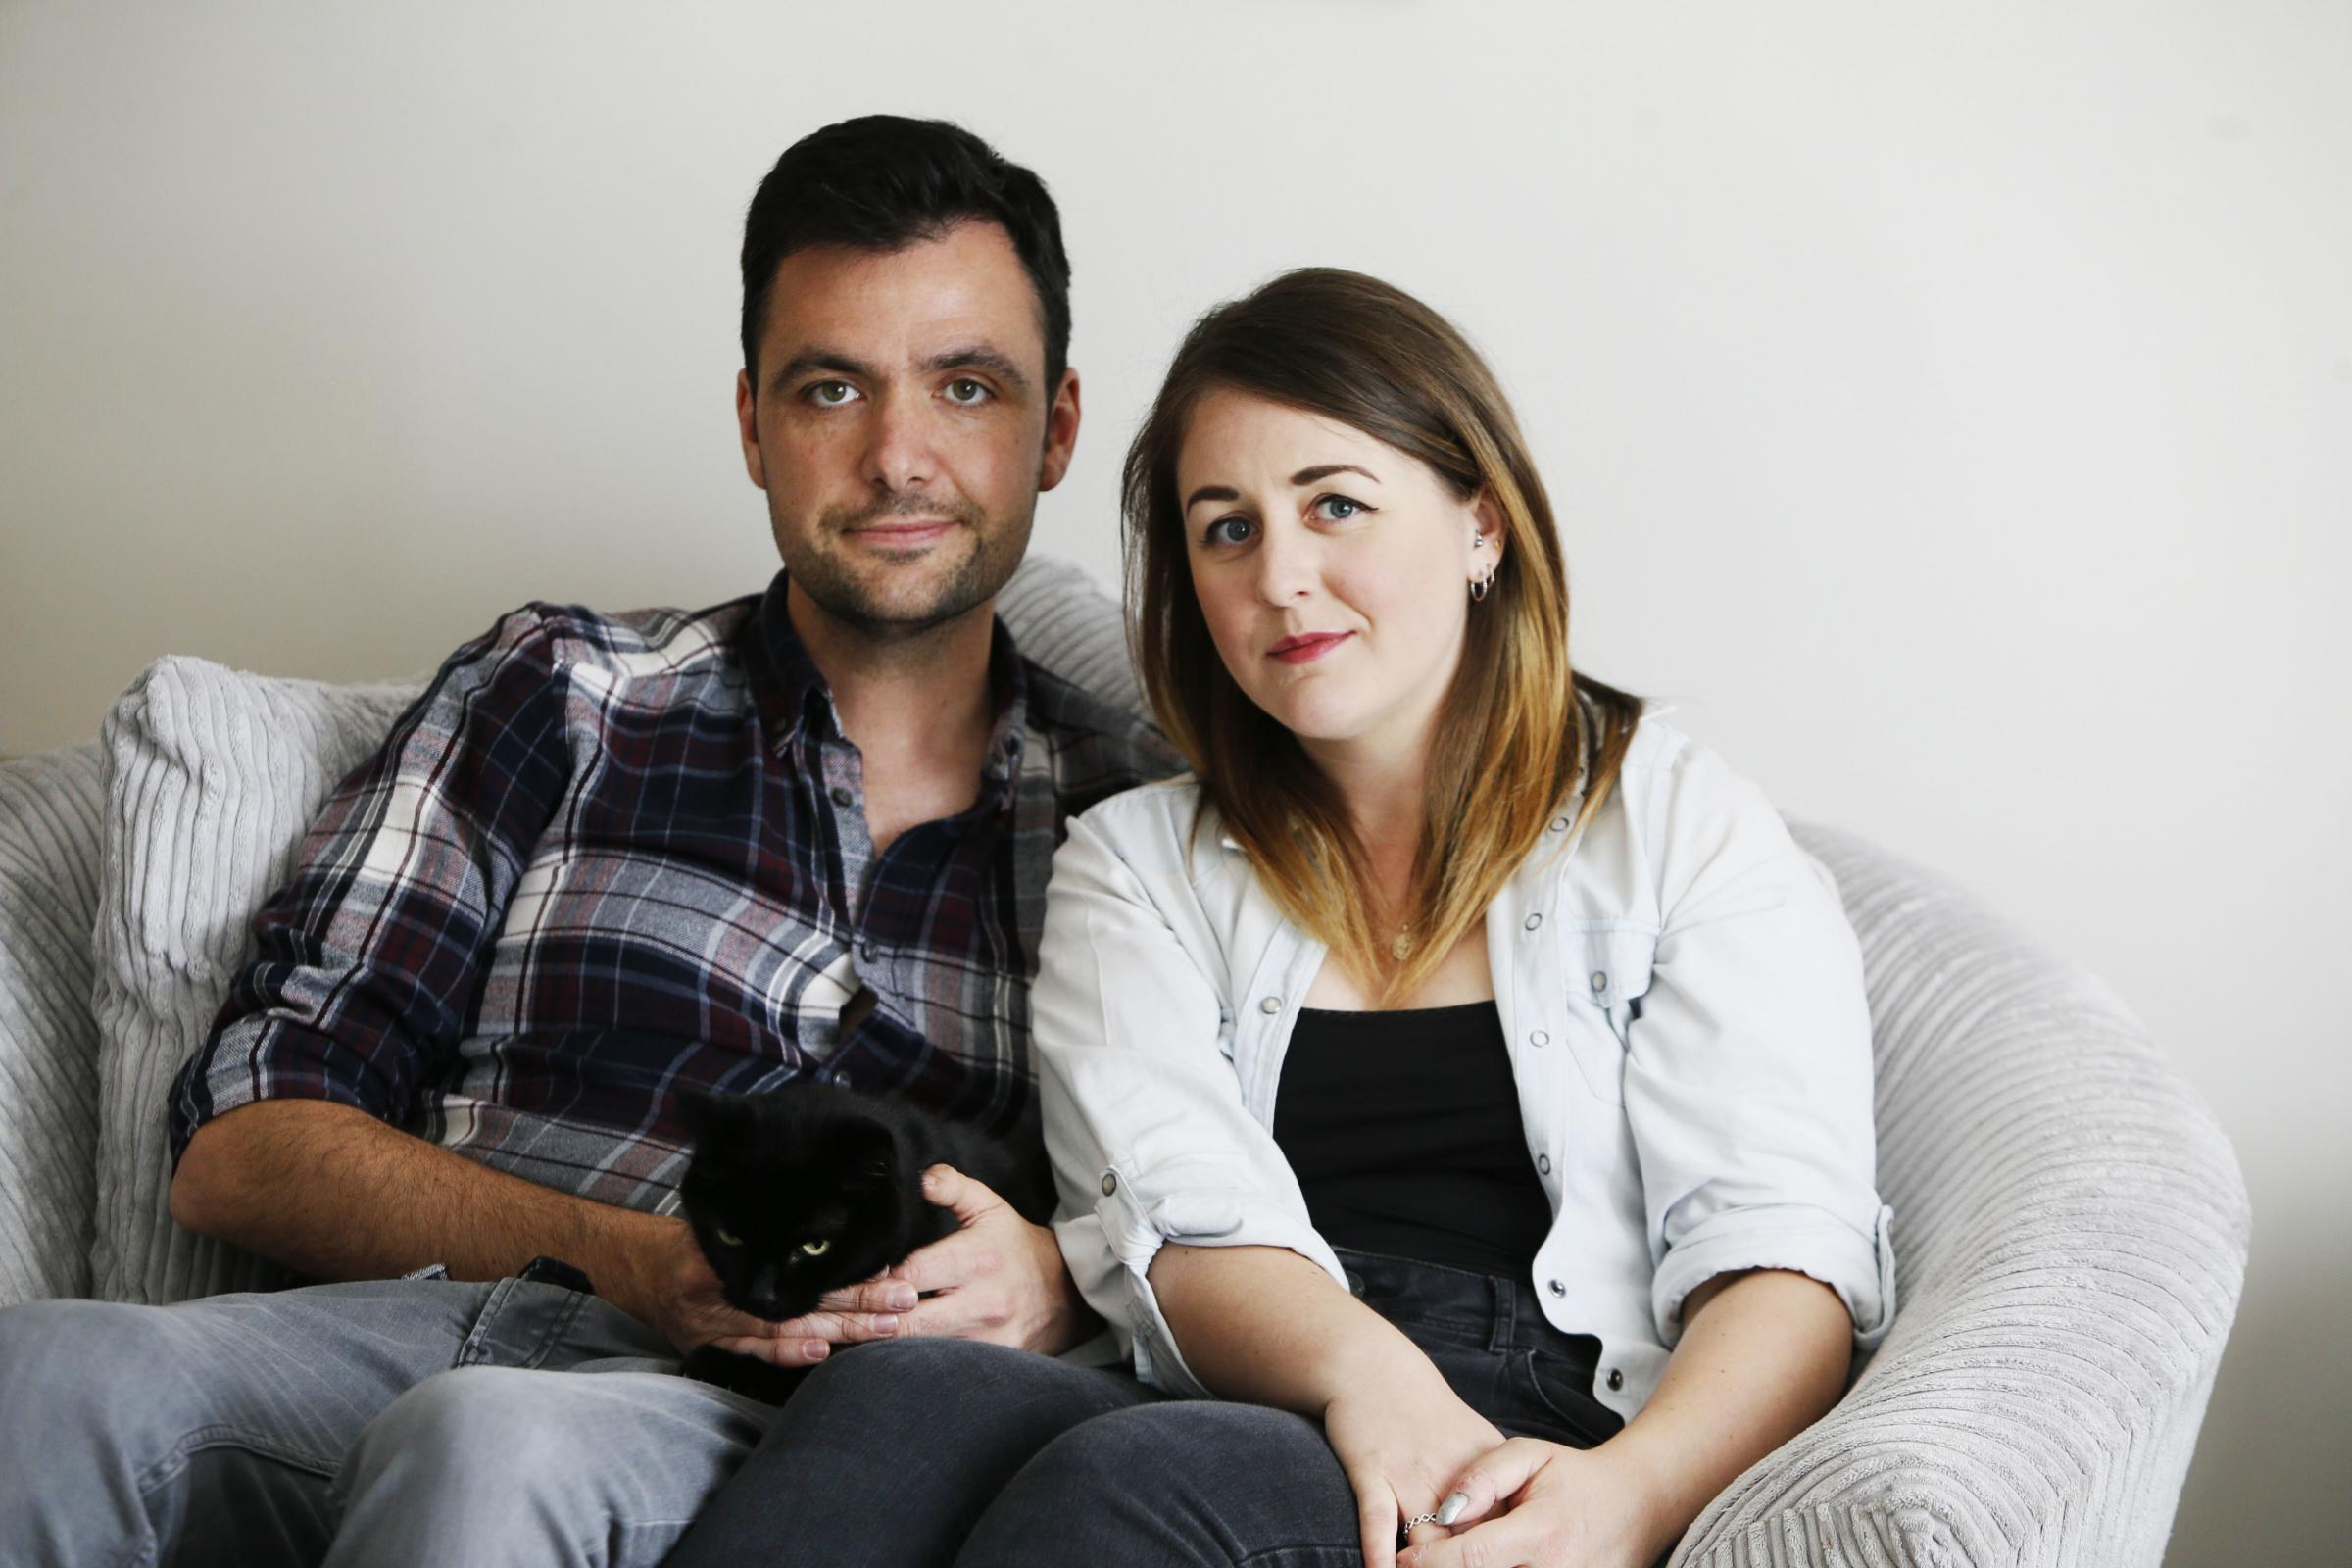 Couple call for an end to Oxfordshire's IVF 'postcode lottery'